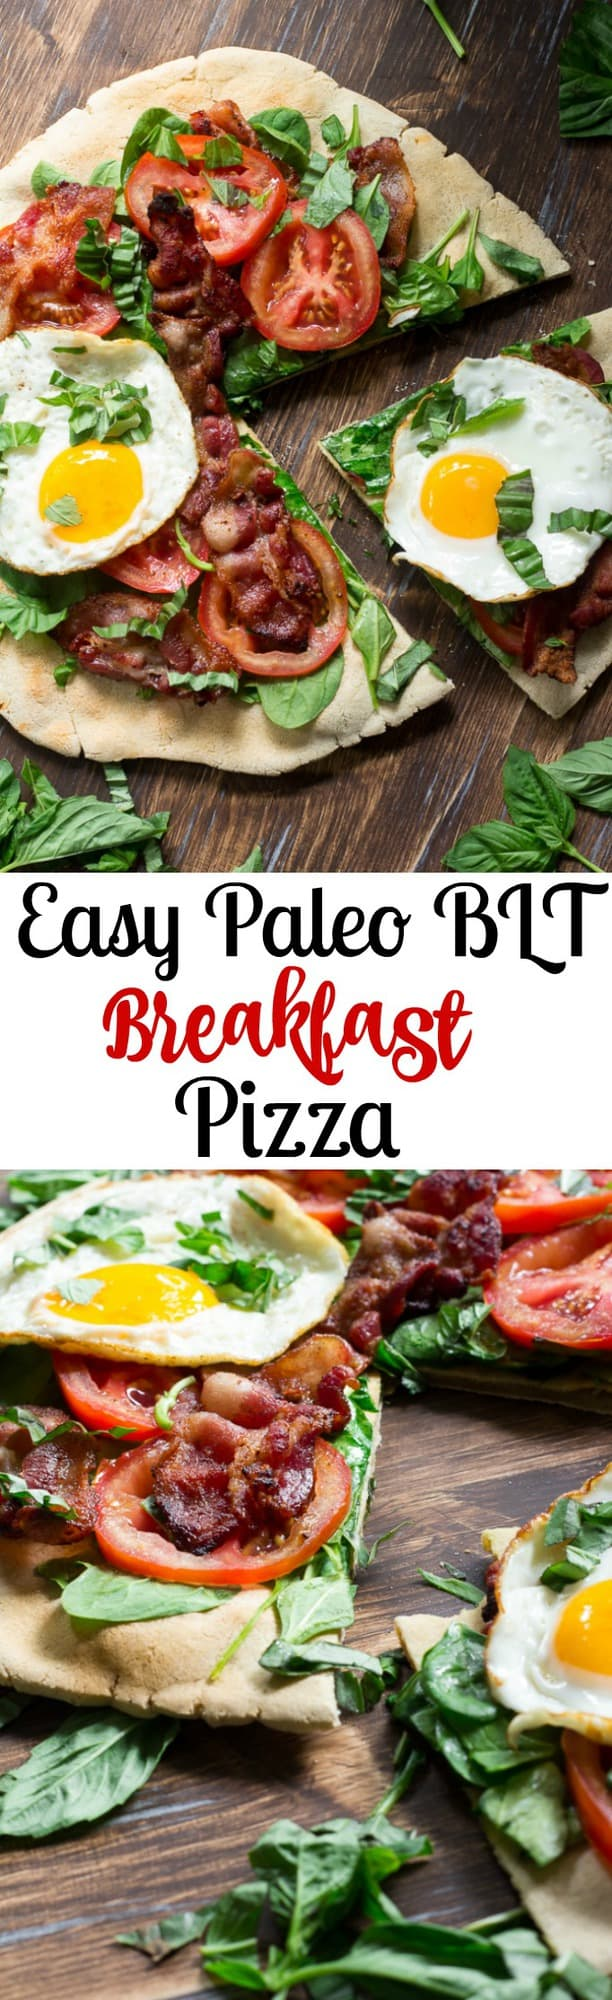 Easy Paleo BLT breakfast pizza